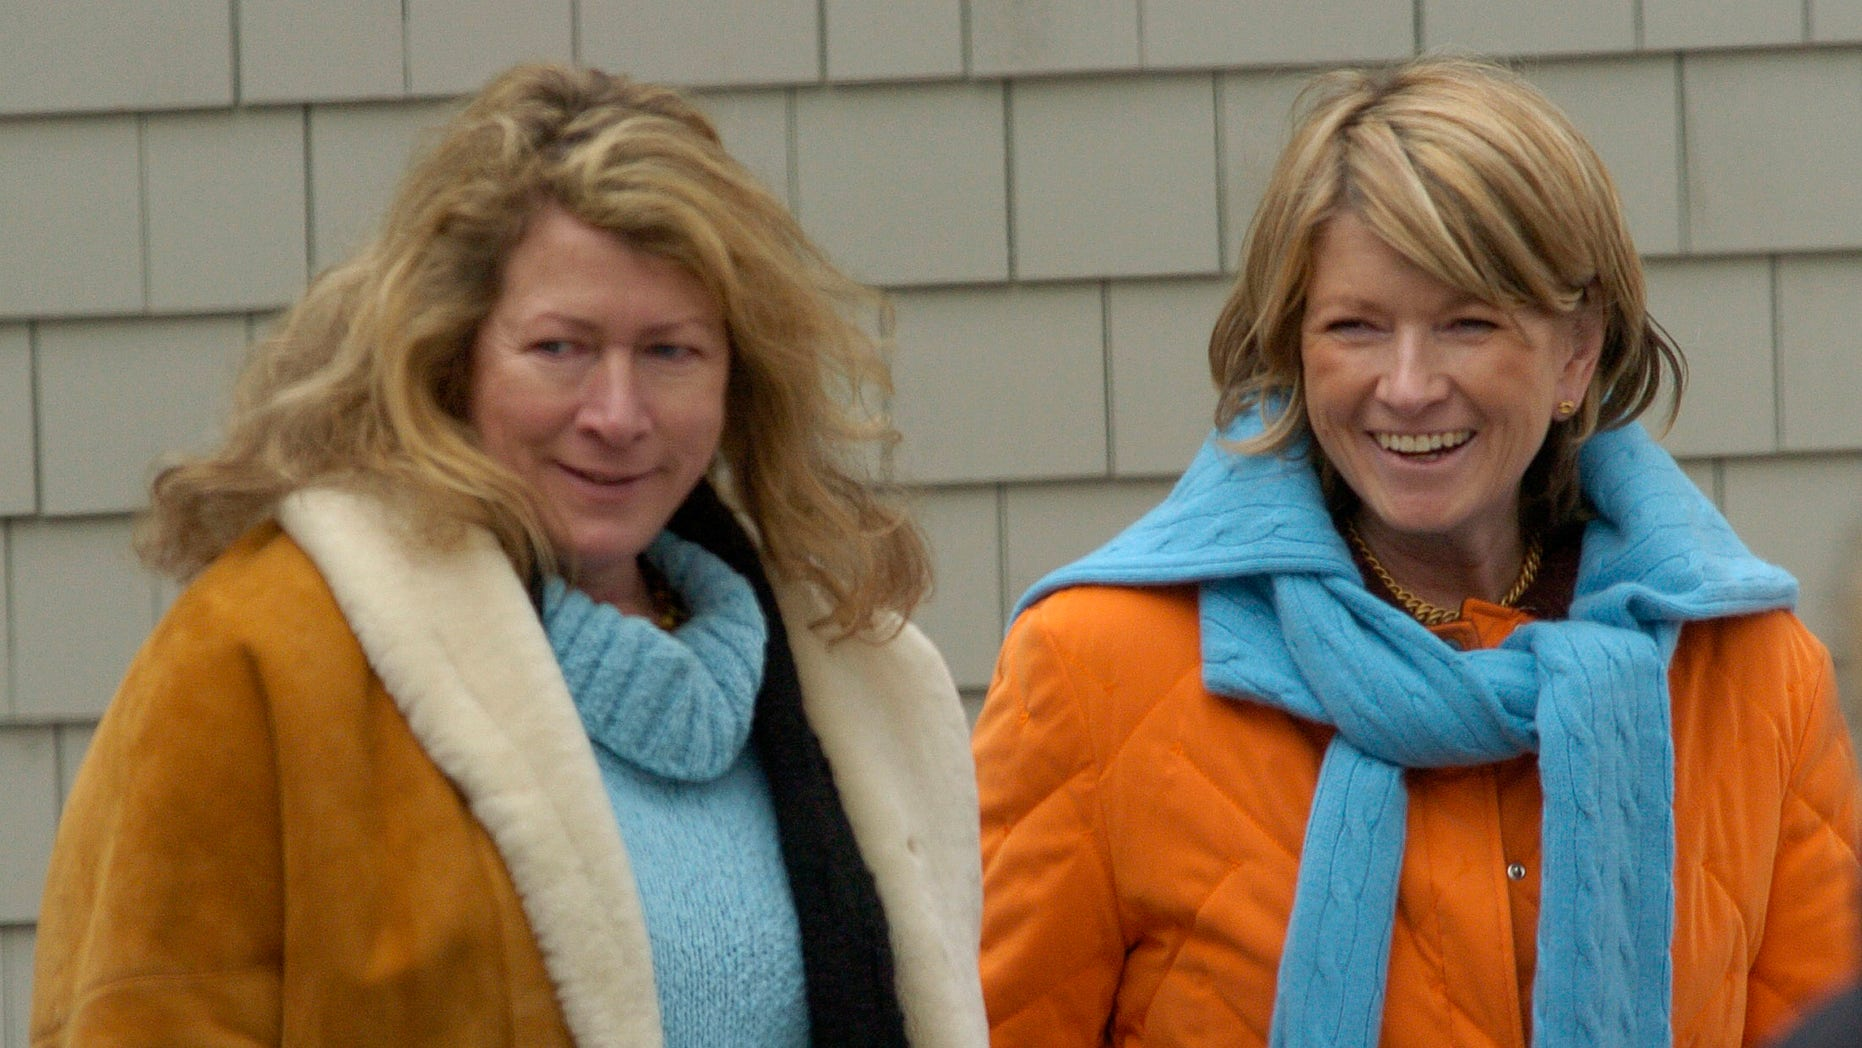 Martha Stewart (R) walks on the grounds of her estate with her sister Laura Plimpton (L) in Bedford, New York, March 6, 2005. Stewart, the lifestyle trendsetter who built a media empire, was released from prison and began five months of house arrest as she works to rehabilitate her image. REUTERS/Chip East  CME - RTR44GE